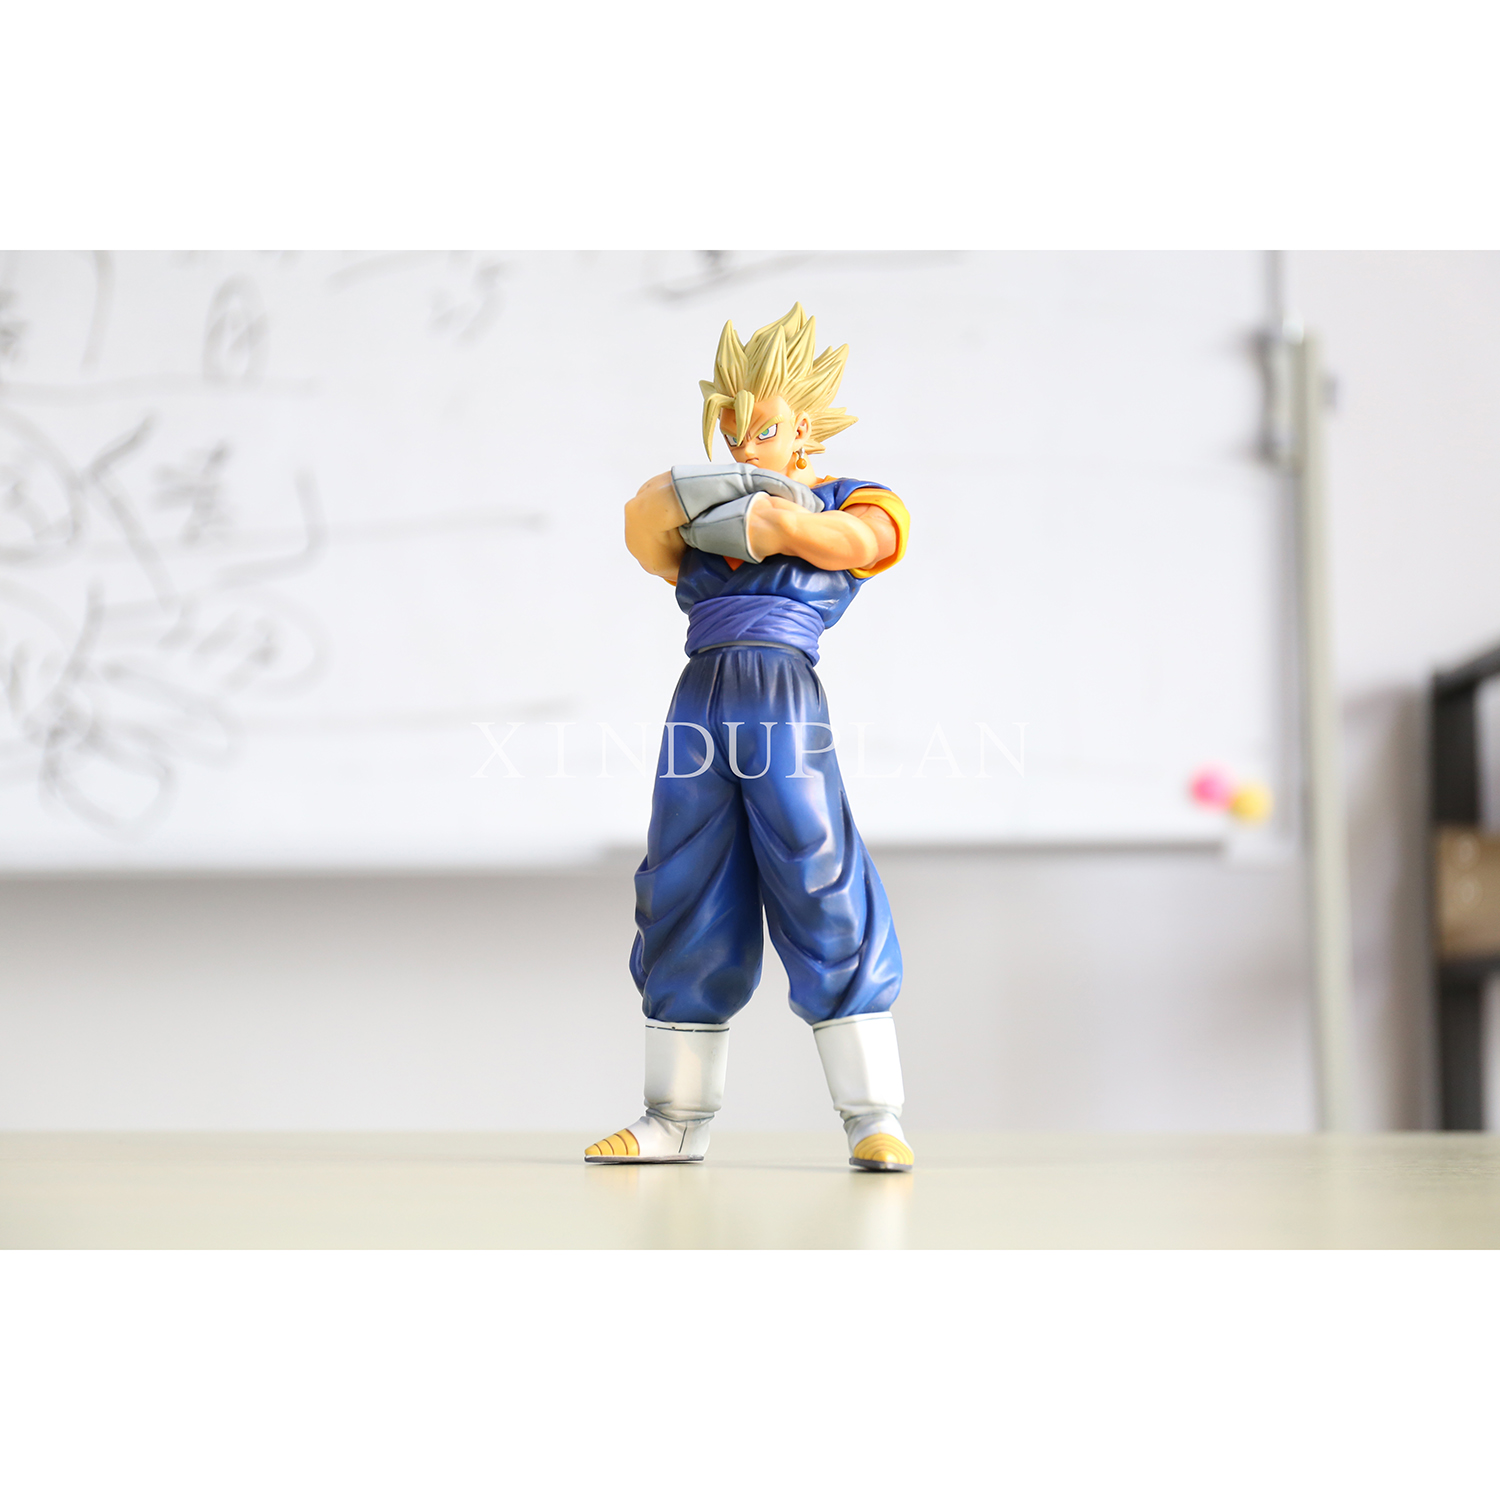 XINDUPLAN Dragon Ball Z Anime Dragonball Vegetto Son Goku Kakarotto Vegeta Süper Saiyan Action Figure Oyuncaklar 19 cm PVC Model 0400